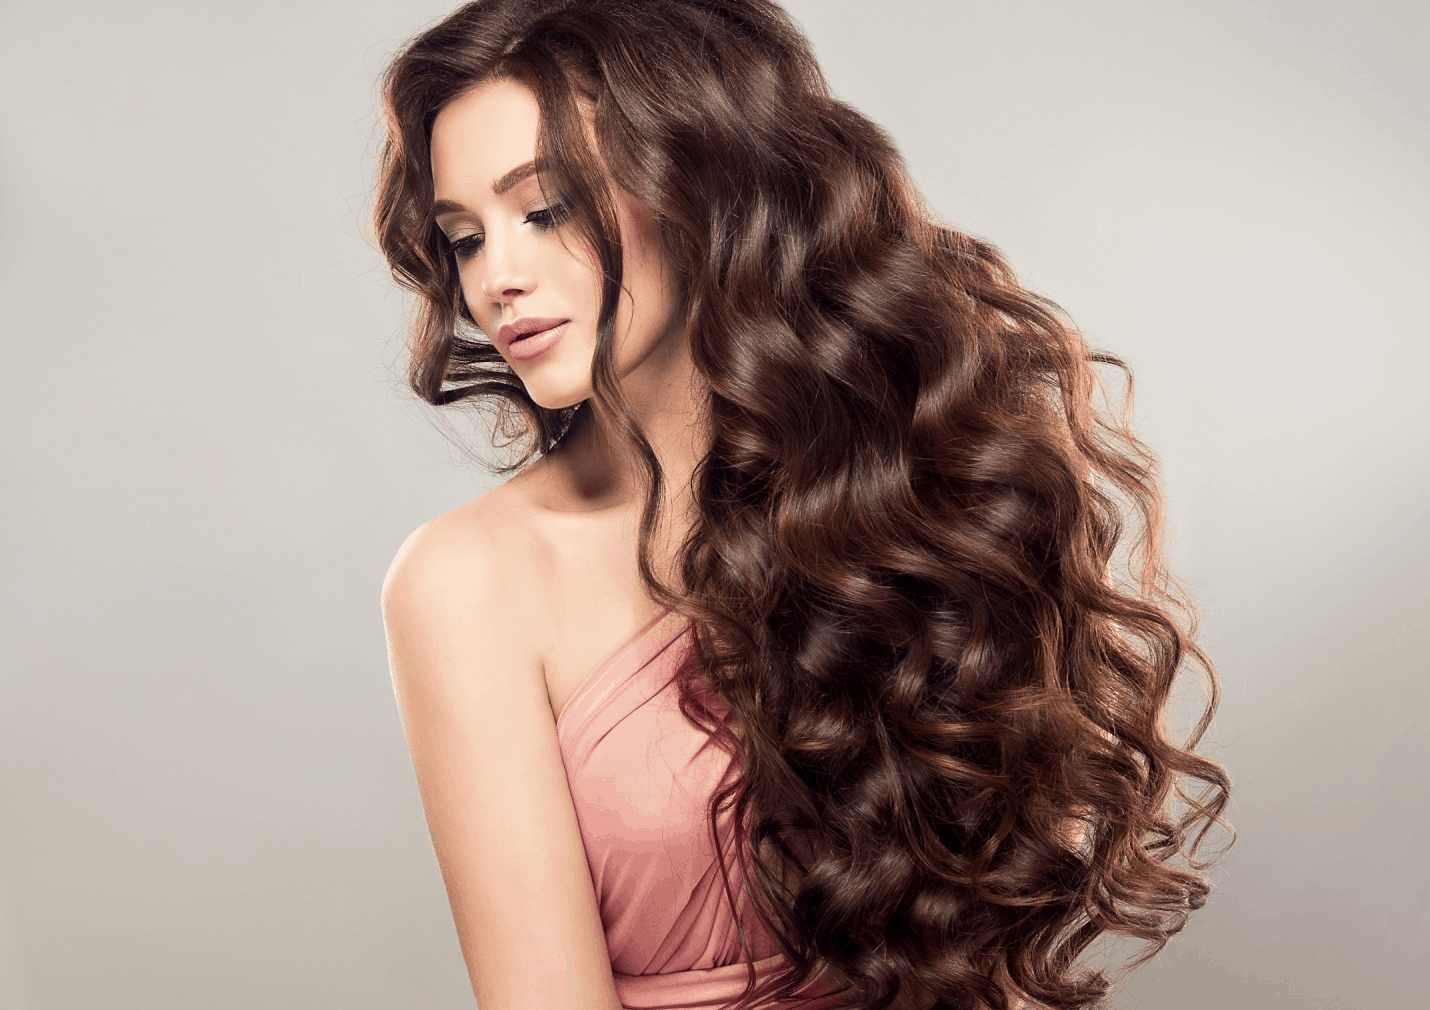 https://cms.tocdep365.vn/wp-content/uploads/2021/06/General-Hair-Care-Tips-for-Thick-Hair.png